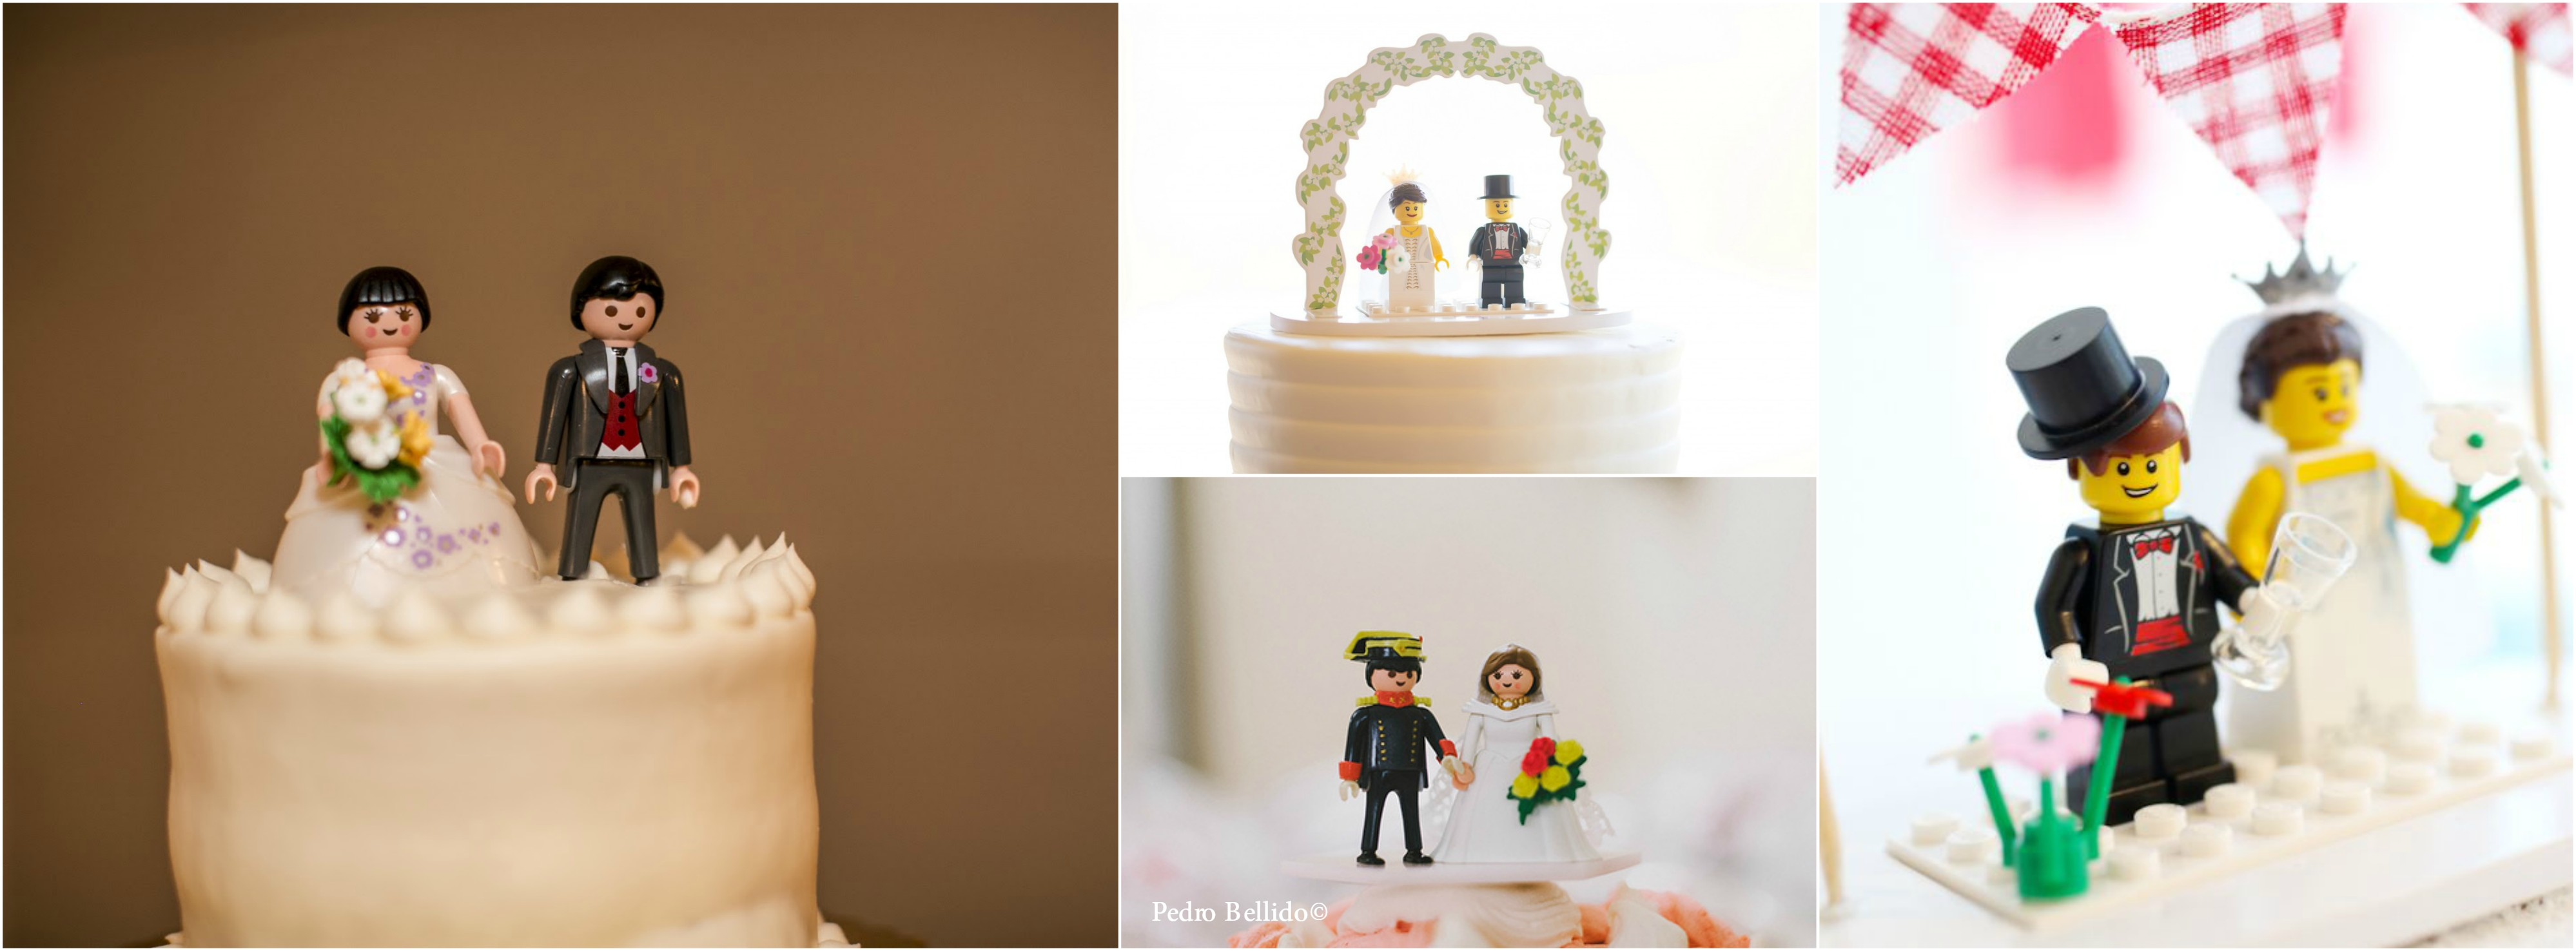 playmobil cake topper